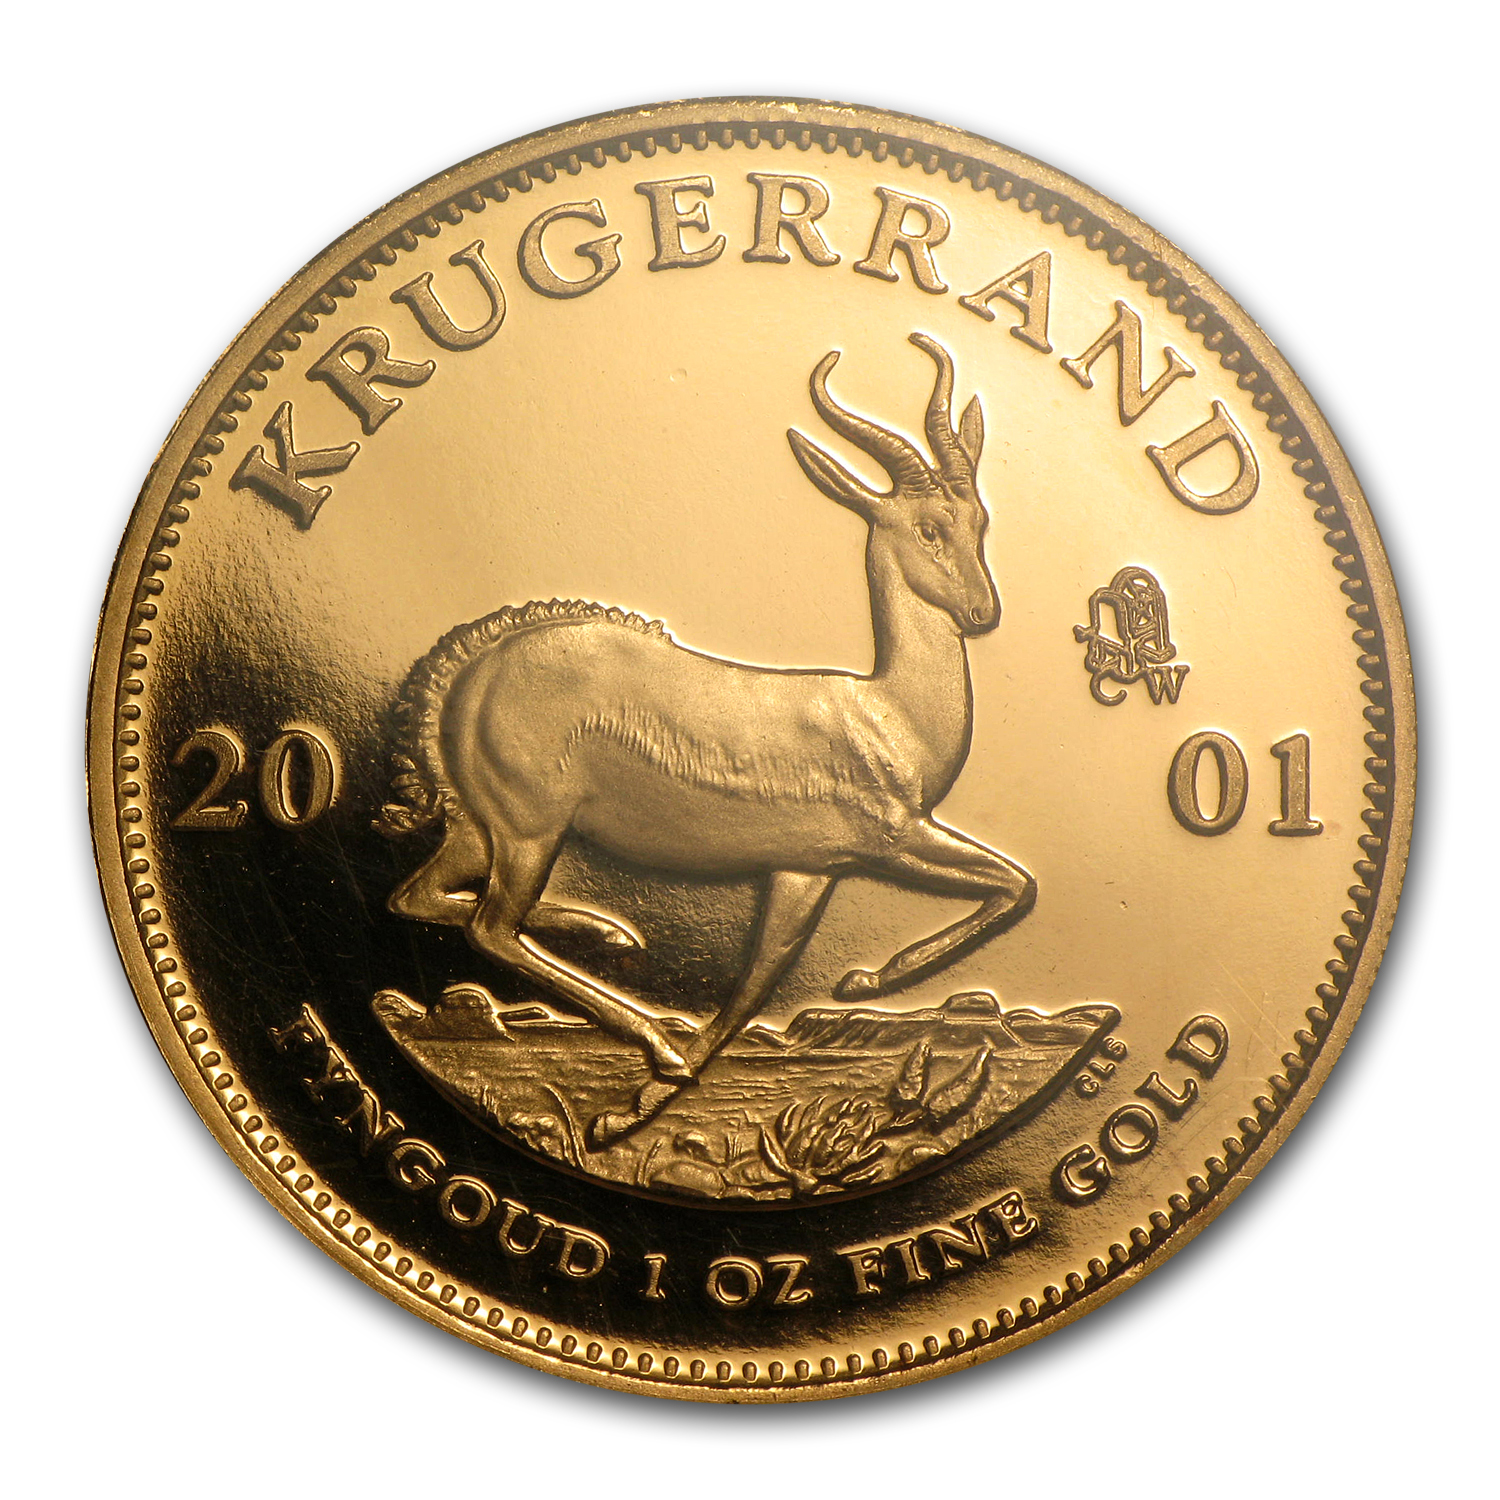 2001 1 oz Gold South African Krugerrand PF-68 NGC (CW Privy)